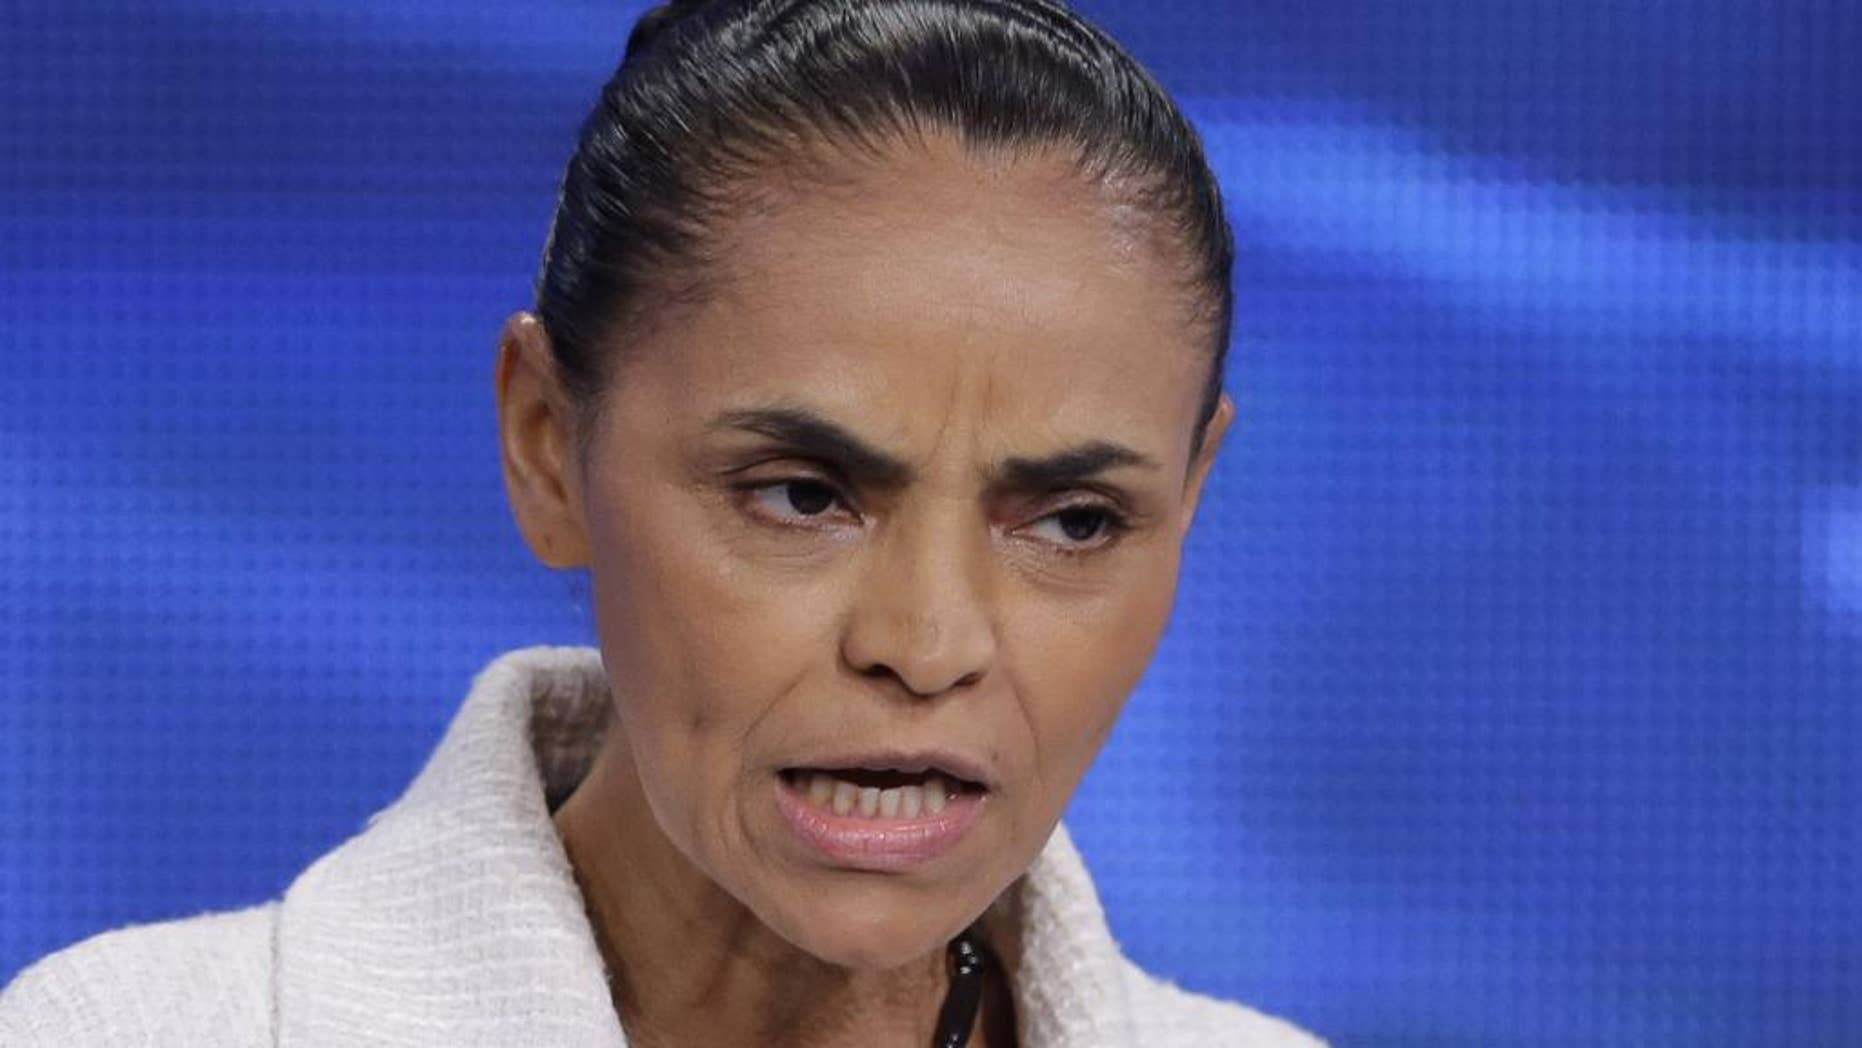 Marina Silva, presidential candidate of the Brazilian Socialist Party, PSB speaks during a televised presidential debate in Sao Paulo, Brazil, Tuesday, Aug. 26, 2014. A new poll shows Silva as the leading rival to Brazil's President Dilma Rousseff and would defeat her in a second-round runoff vote in October's election. (AP Photo/Nelson Antoine)